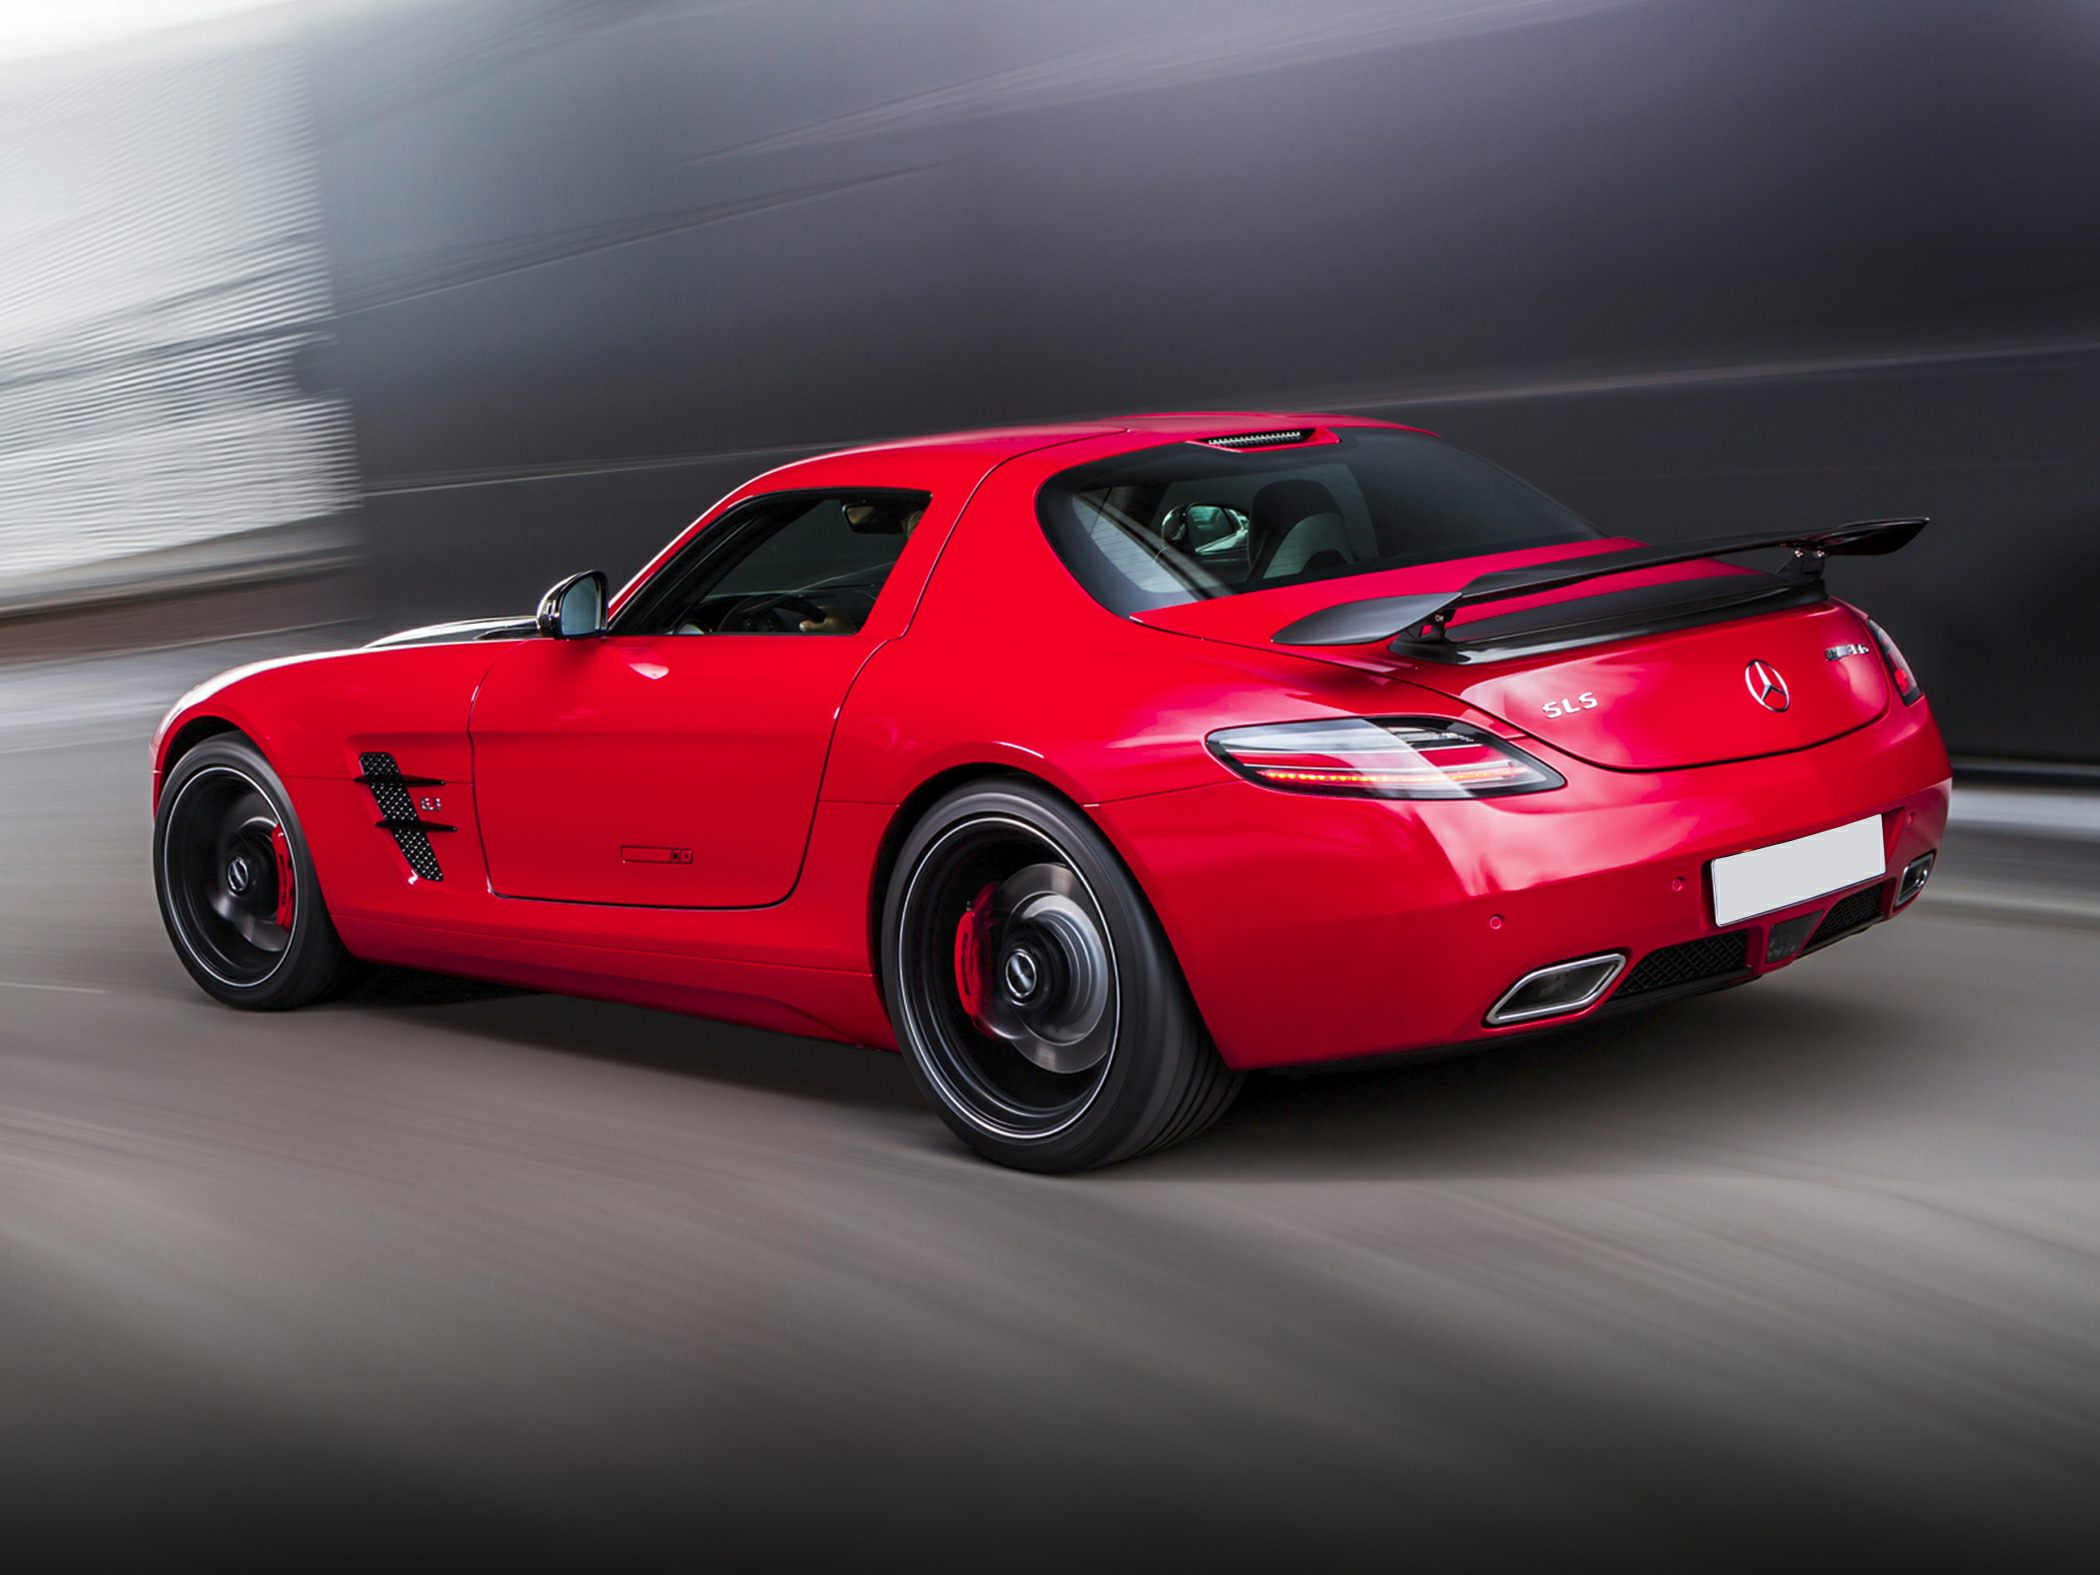 2015 Mercedes-Benz SLS AMG Rear